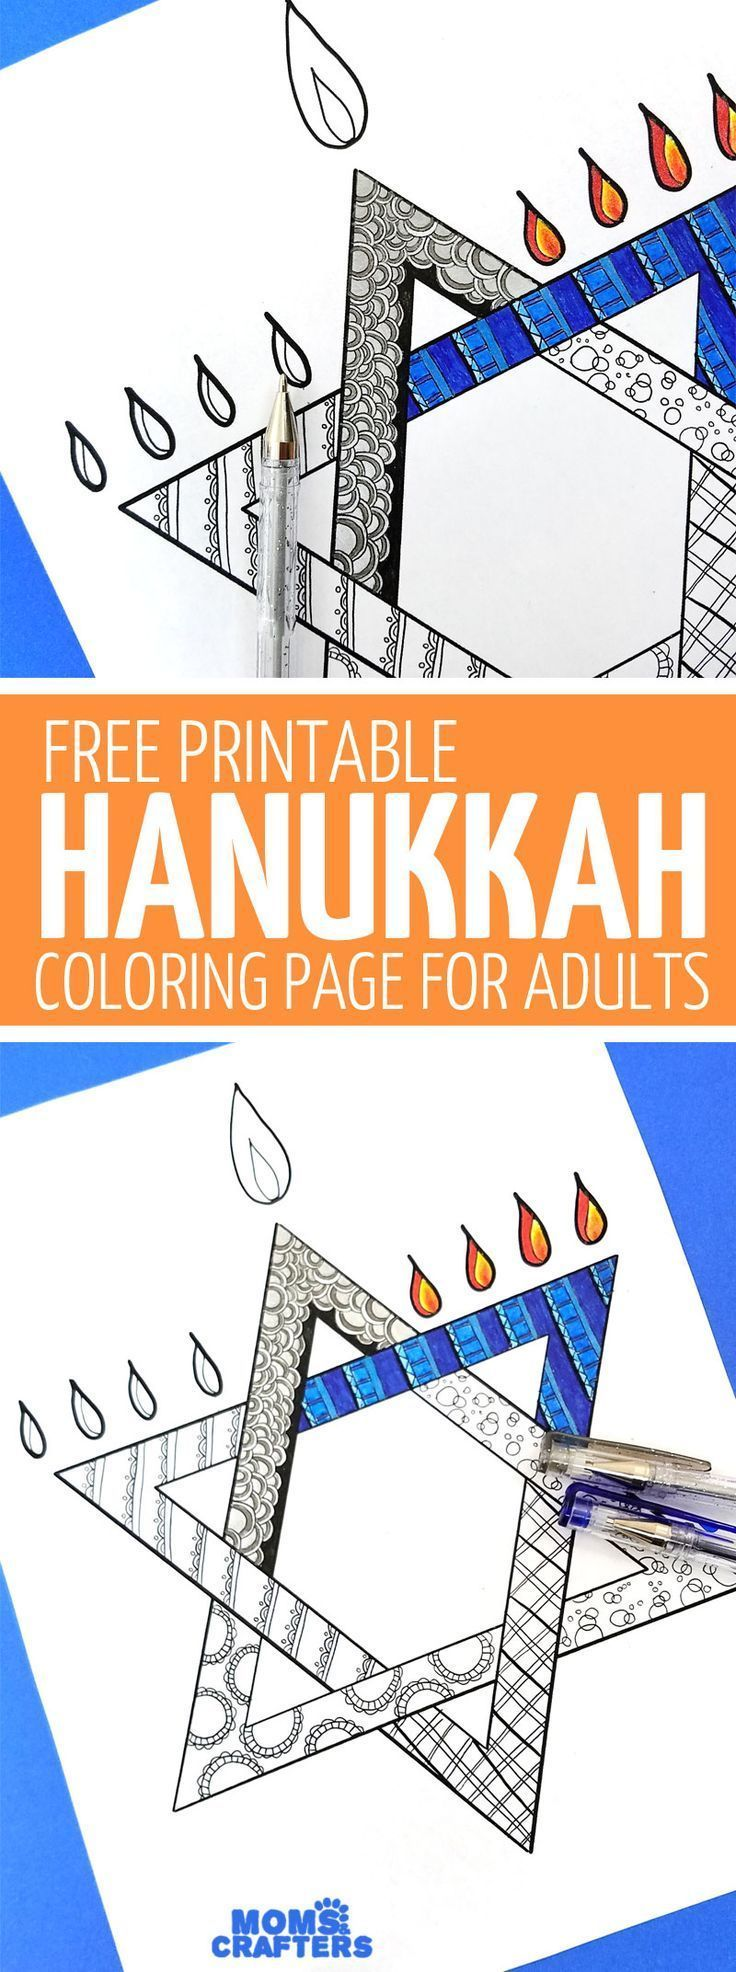 This free printable Hanukkah coloring page for adults is a great Hanukkah activi This free printable Hanukkah coloring page for adults is a great Hanukkah activi